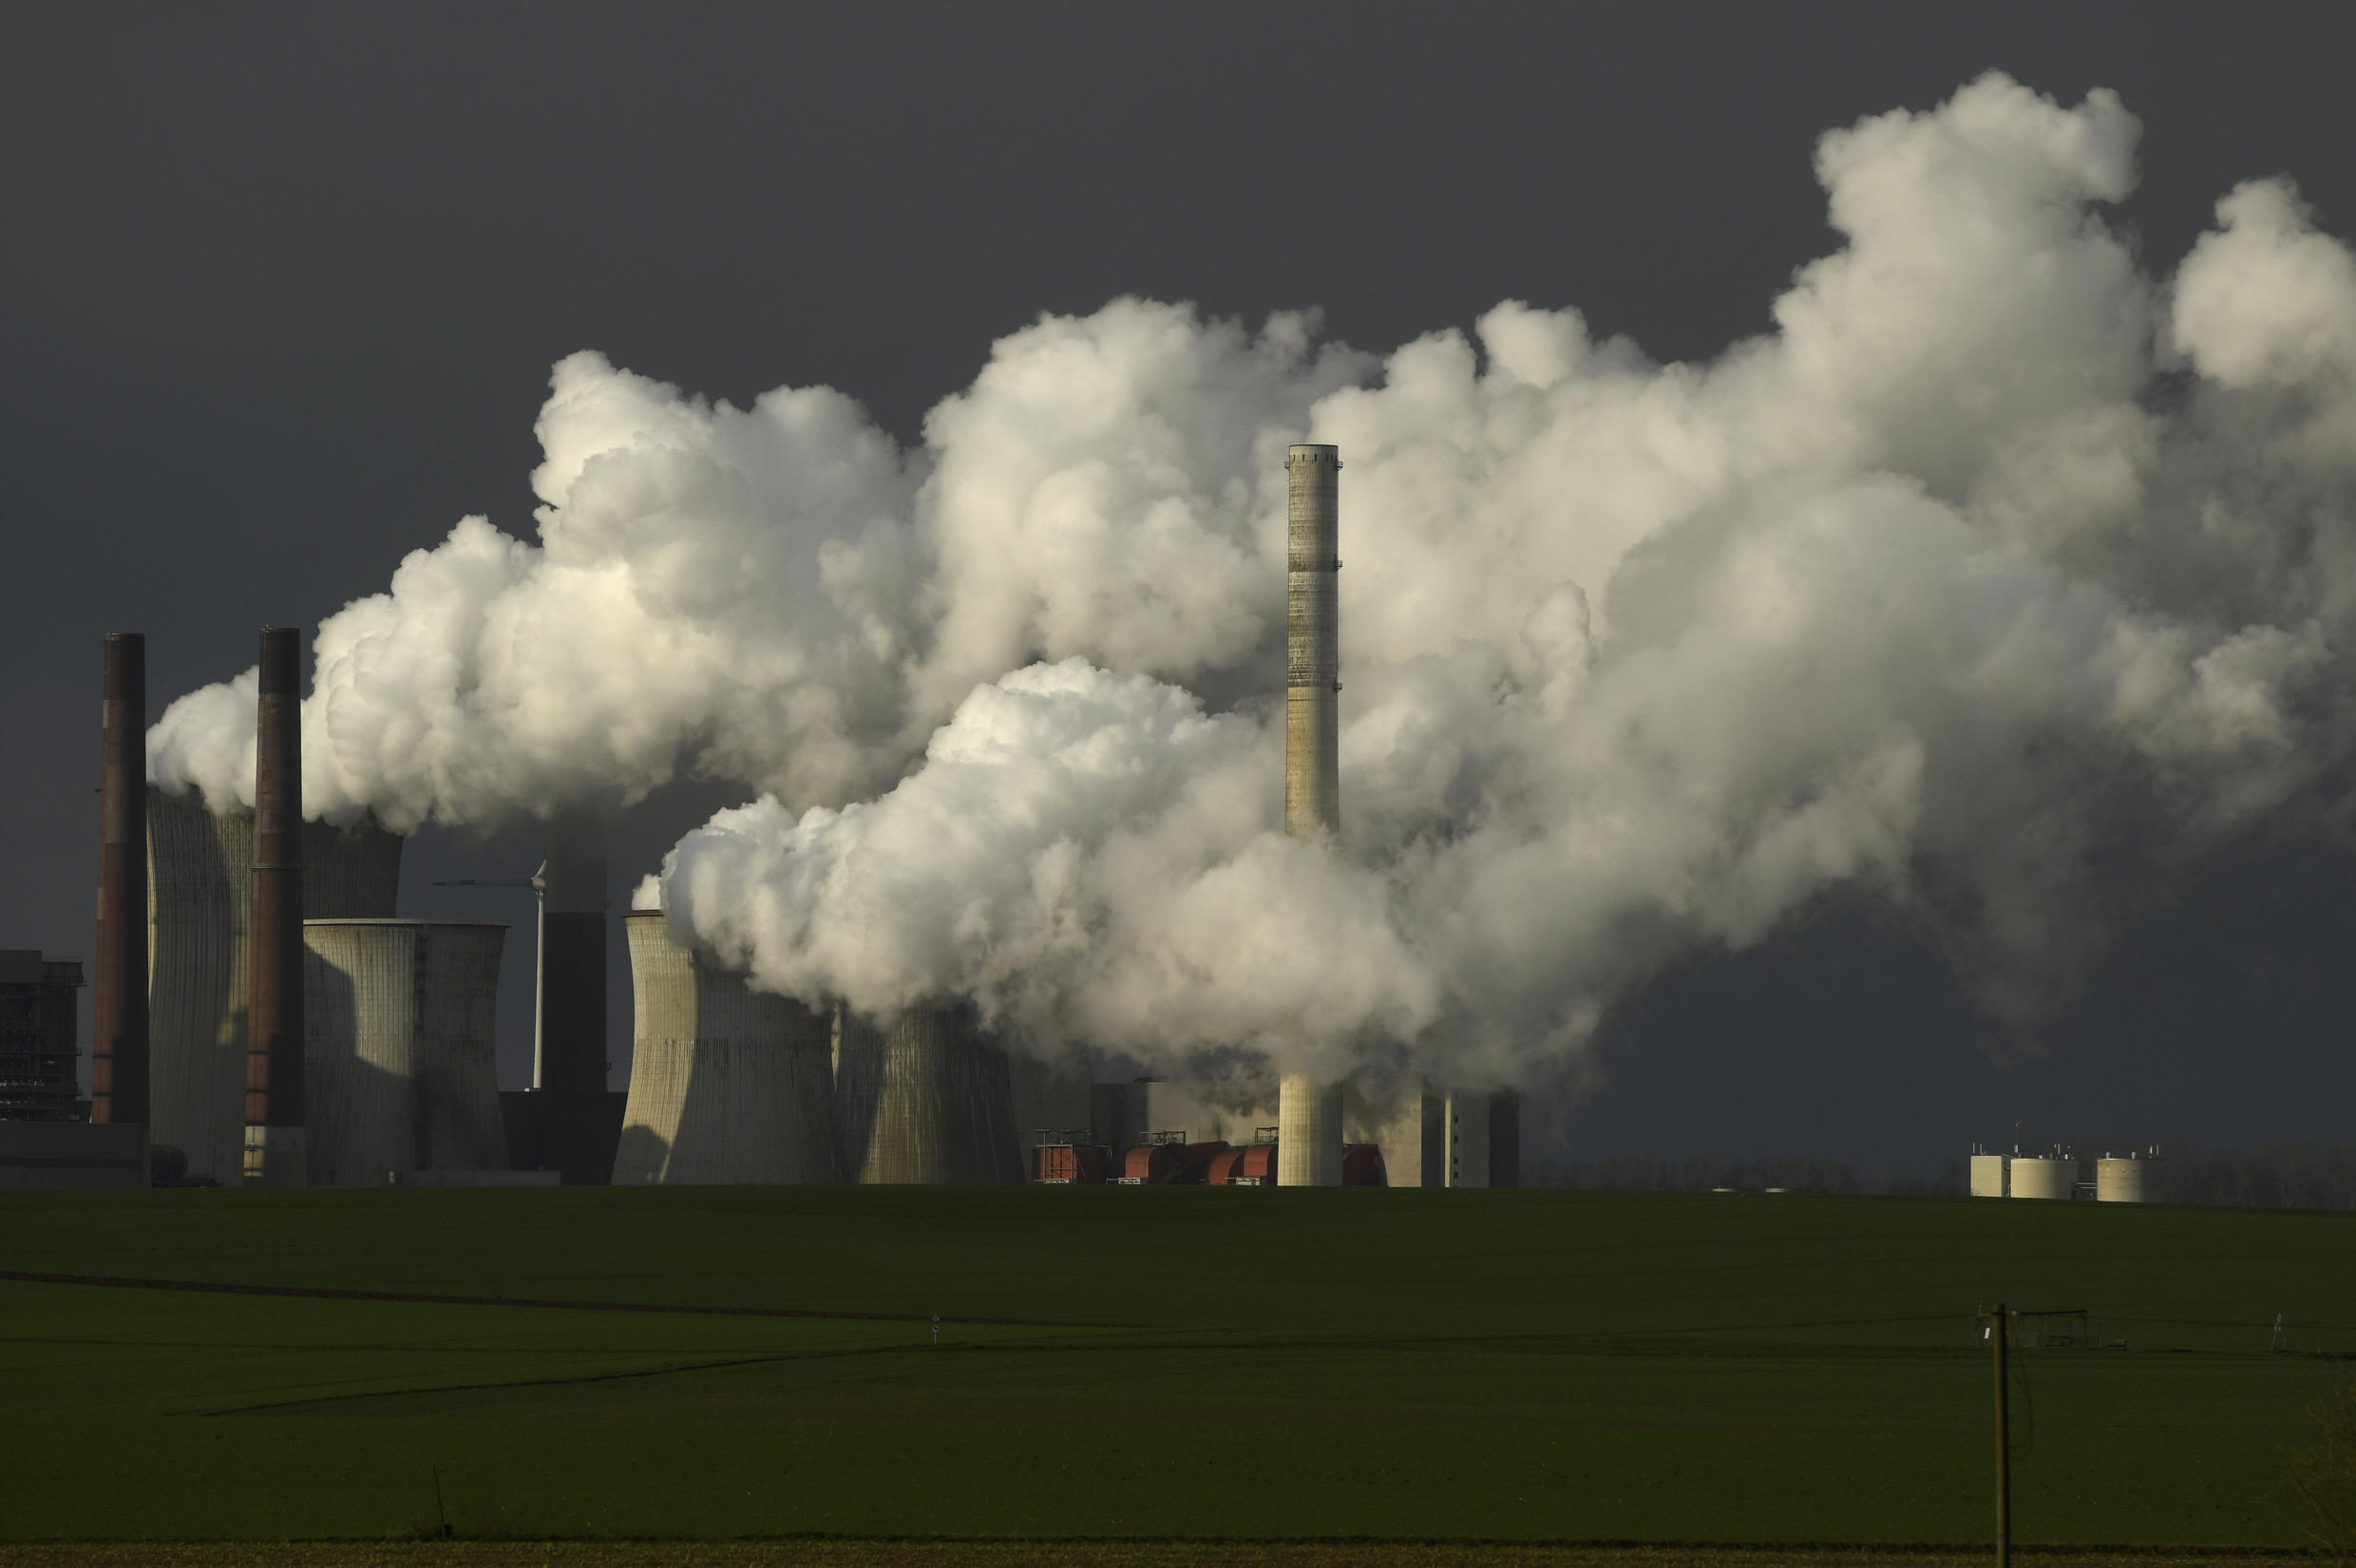 Population confinement has led to drastic changes in energy use and CO2 emissions.